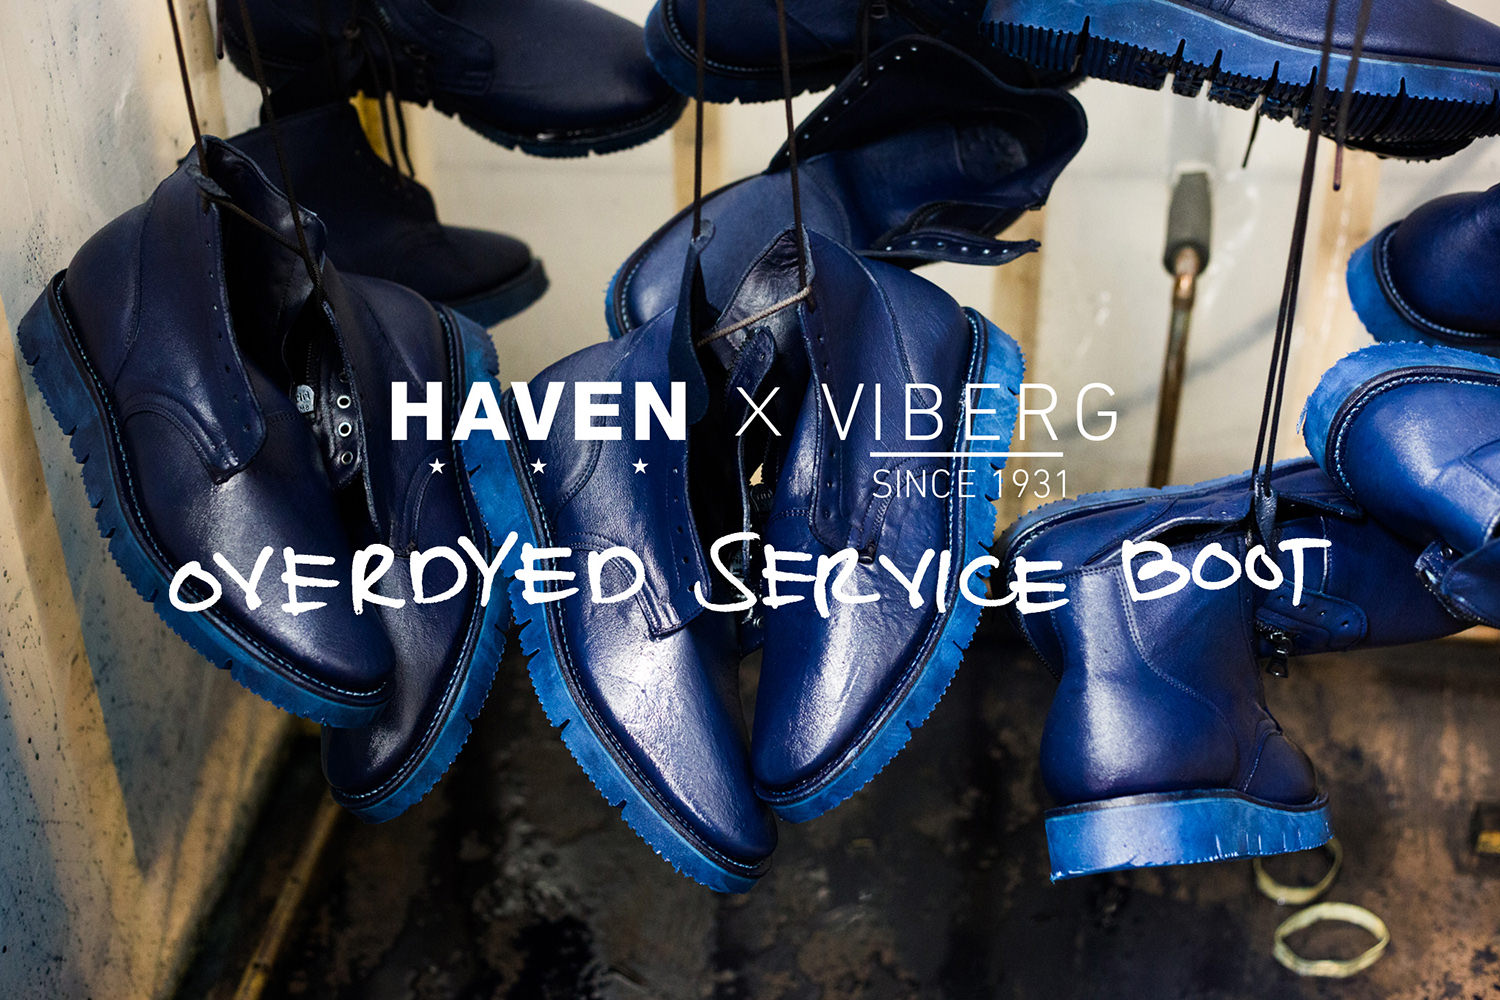 Haven-x-Viberg-10-Year-Service-Boots-Feature-0